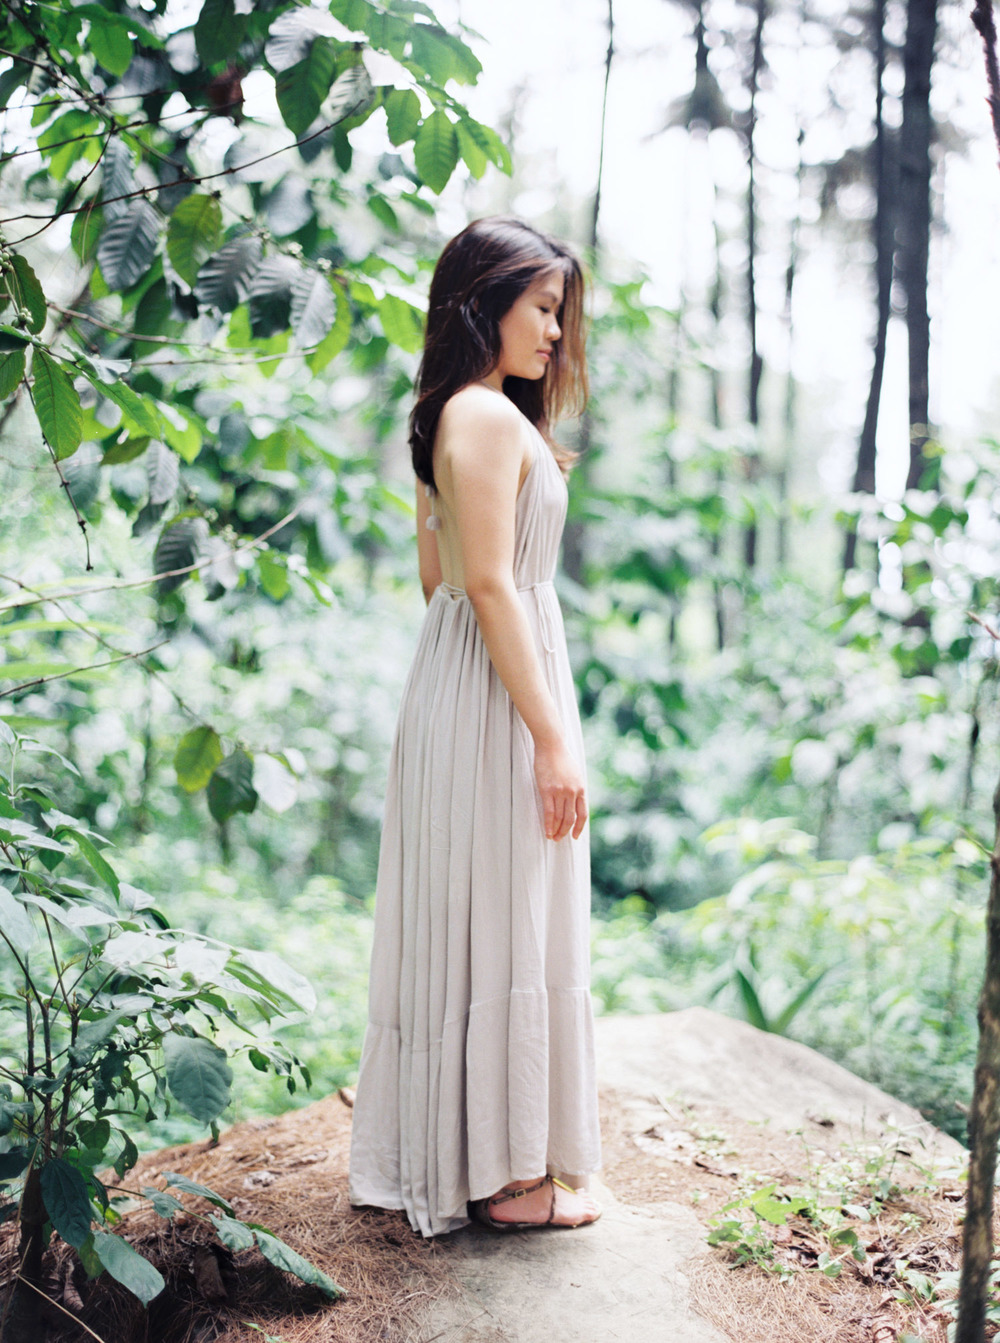 19-nature-outdoor-forest-prewedding-jakarta.jpg